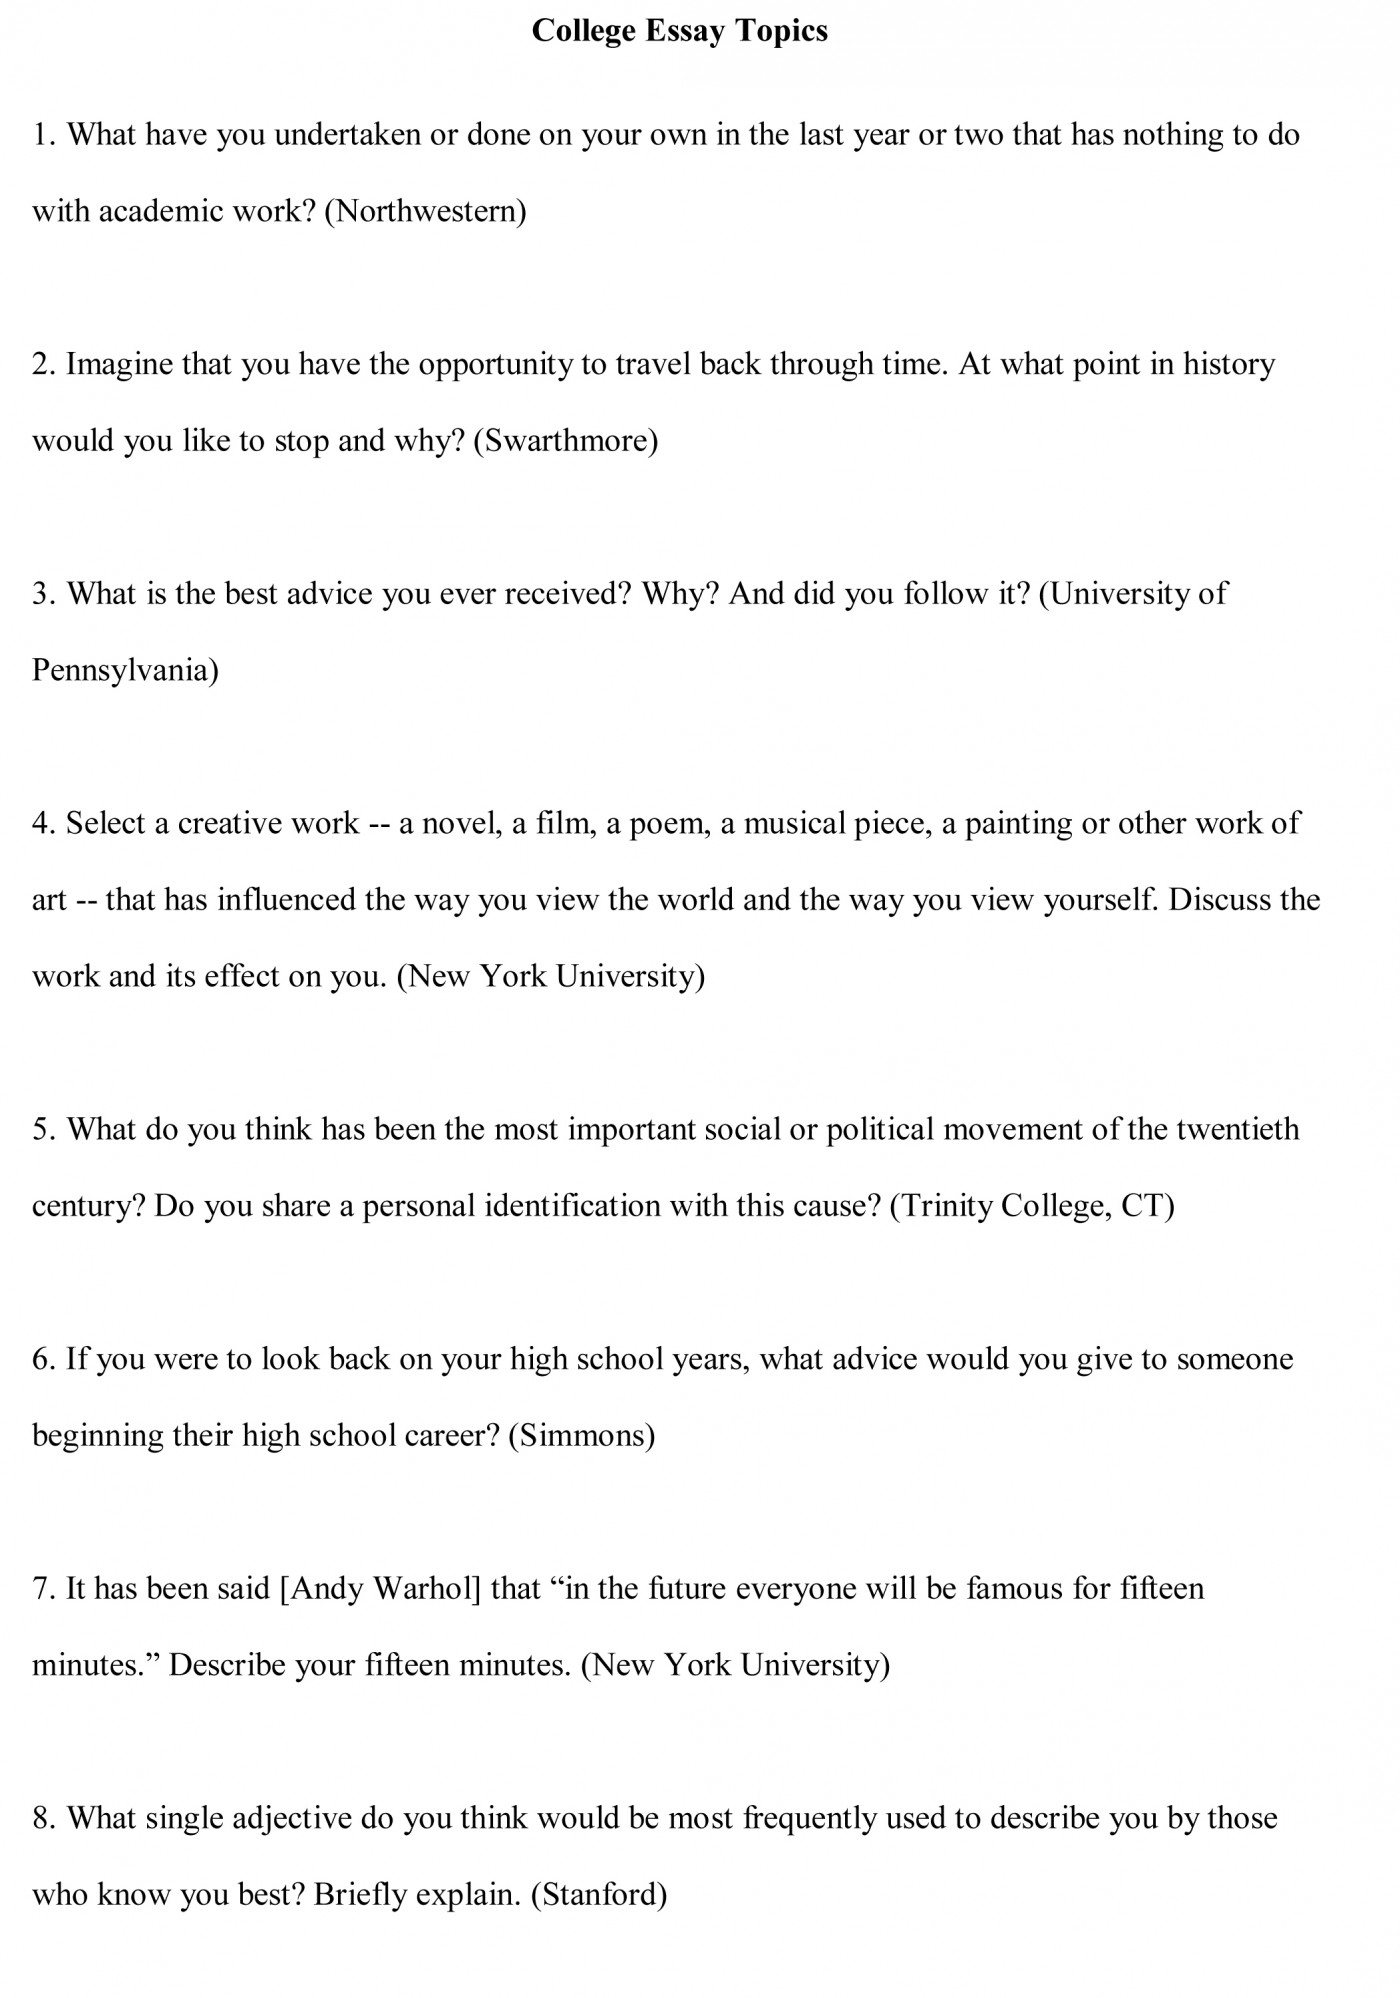 023 Free Essay Generator College Topics Sample1 Impressive Reddit No Sign Up 1400